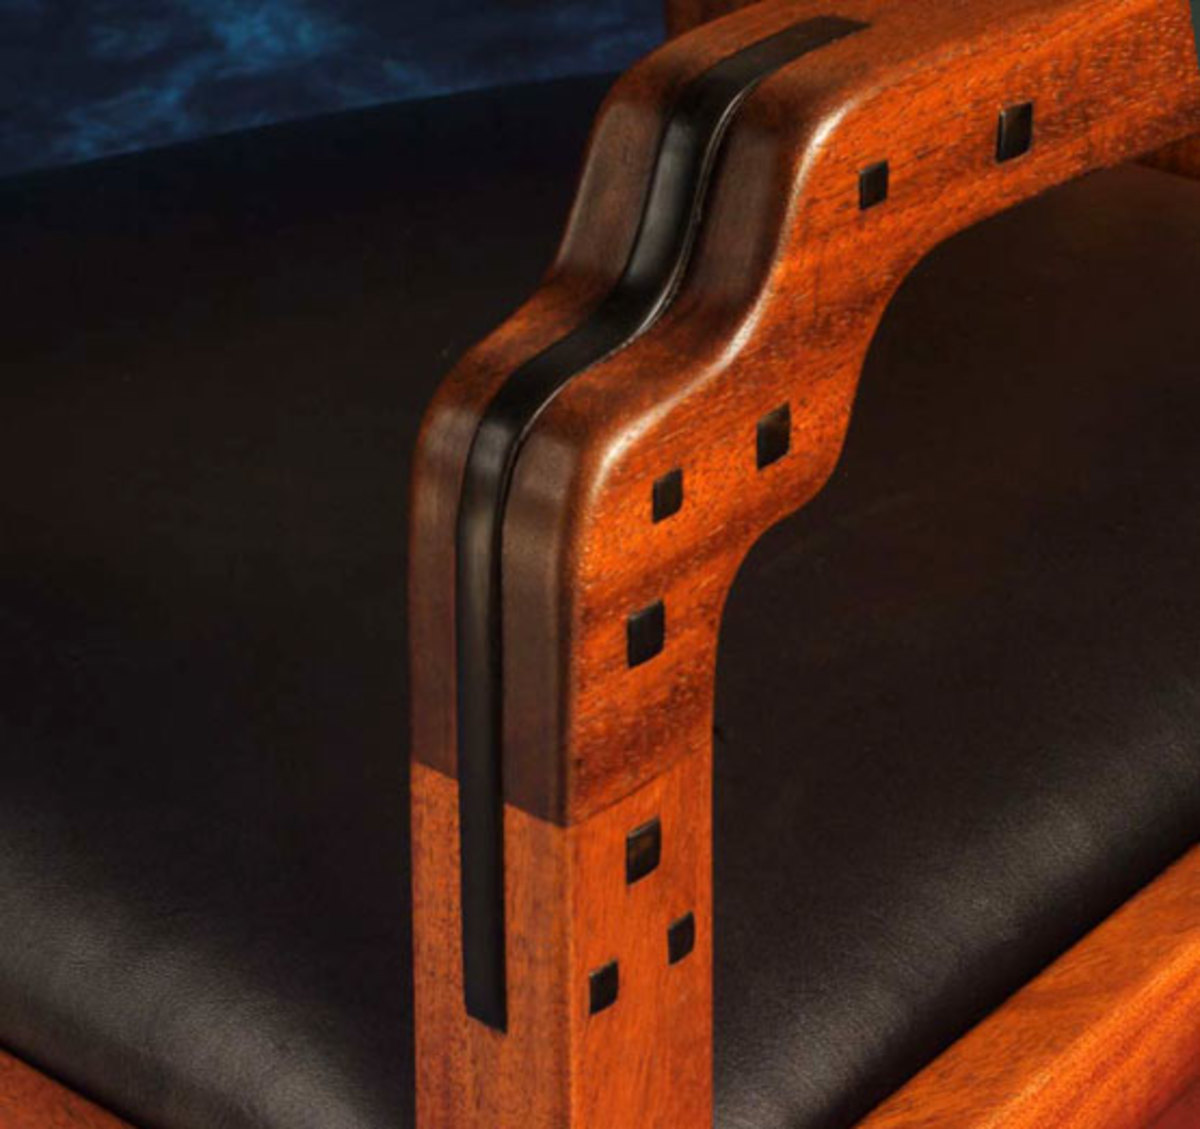 Darrell Peart's take on the Blacker House rocker incorporates S shaping to the arm, ebony plugs in varied sizes, and Blacker brackets under the seat.